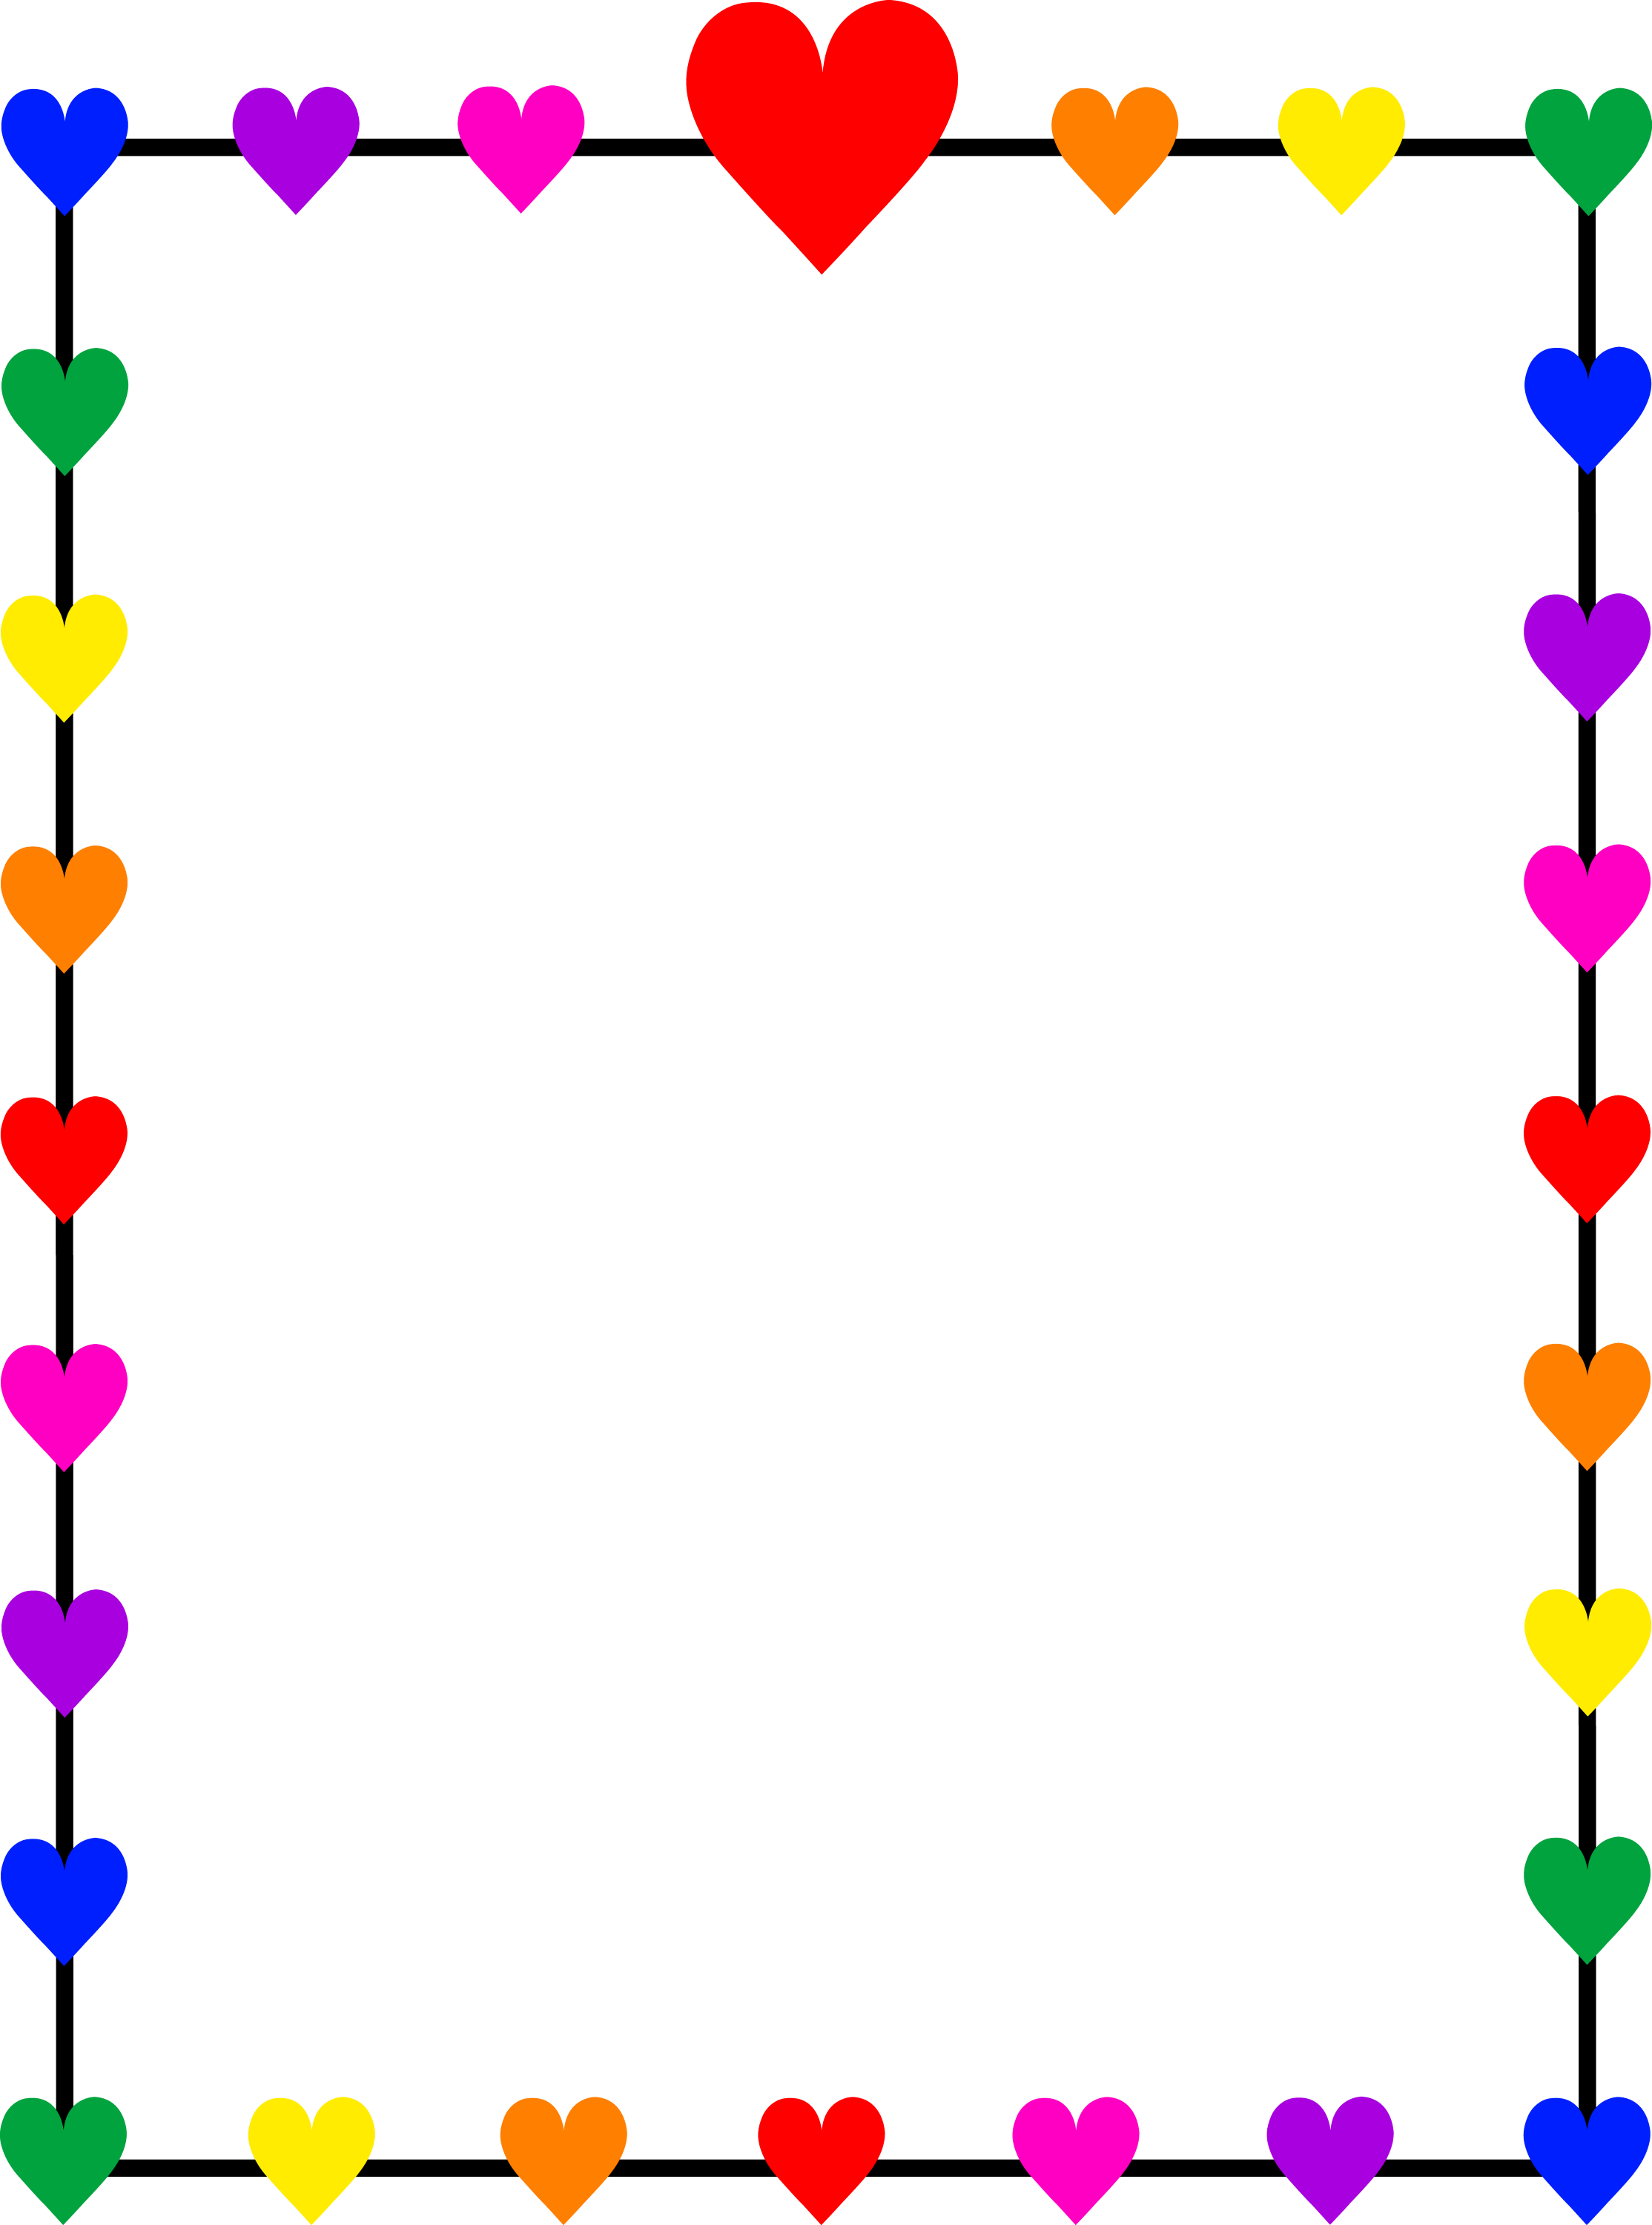 Colorful Rainbow Hearts Frame